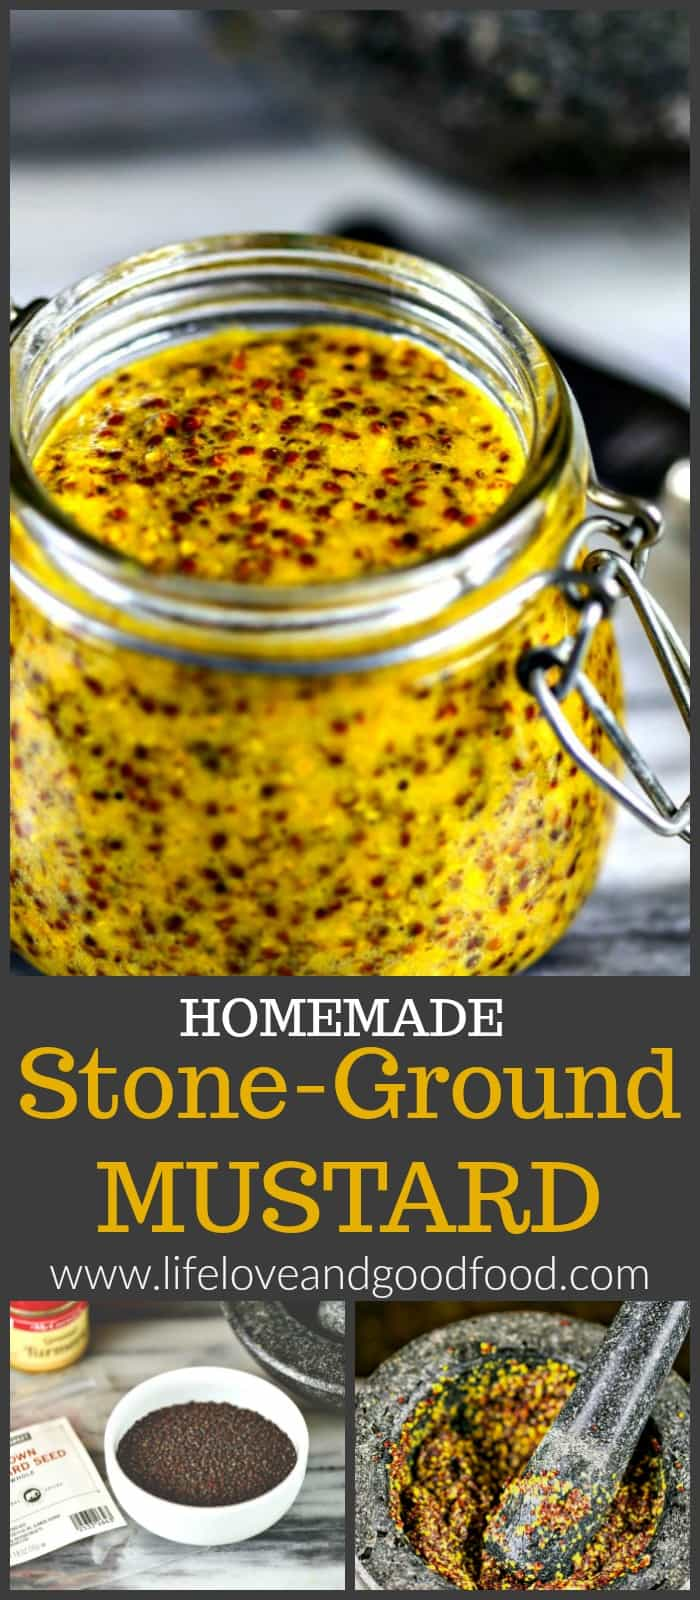 Use a mortar and pestle to crush whole mustard seeds to make spicy, delicious Homemade Stone-Ground Mustard for sandwiches, burgers, and vinaigrettes.